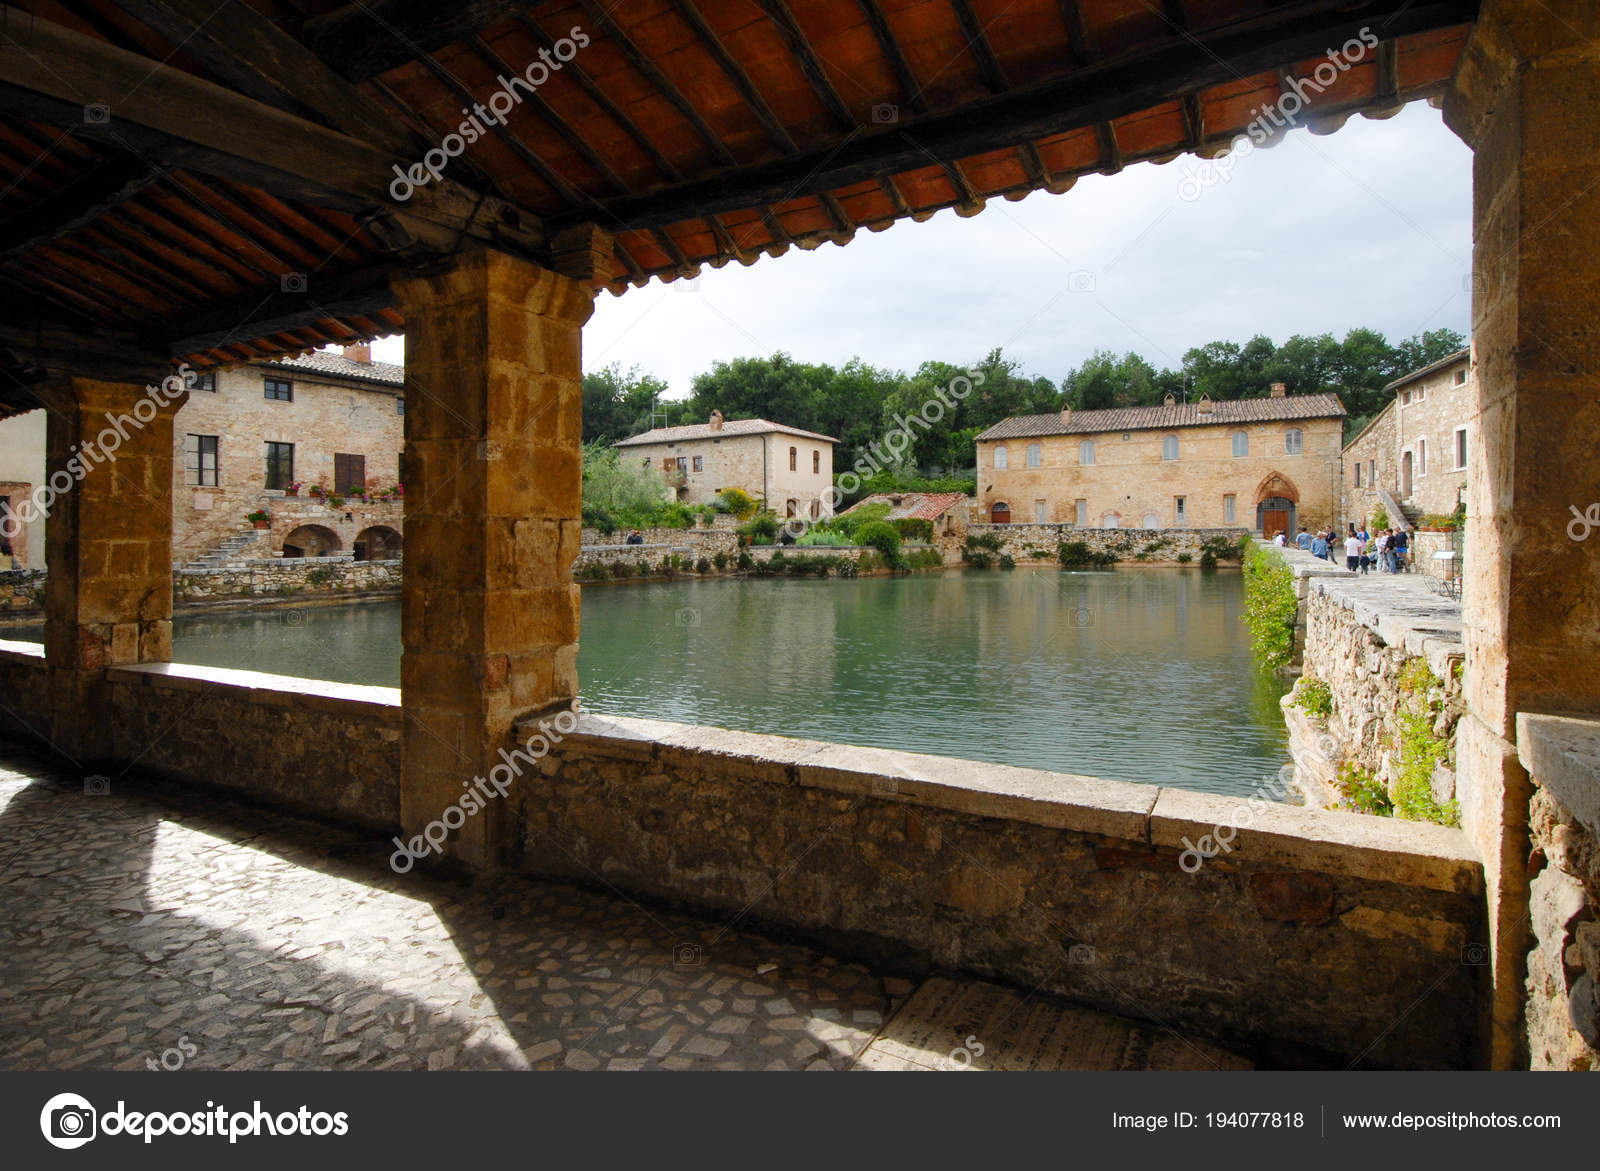 Bagno Vignoni Free Thermal Baths Old Thermal Baths In The Medieval Village Bagno Vignoni Tuscany